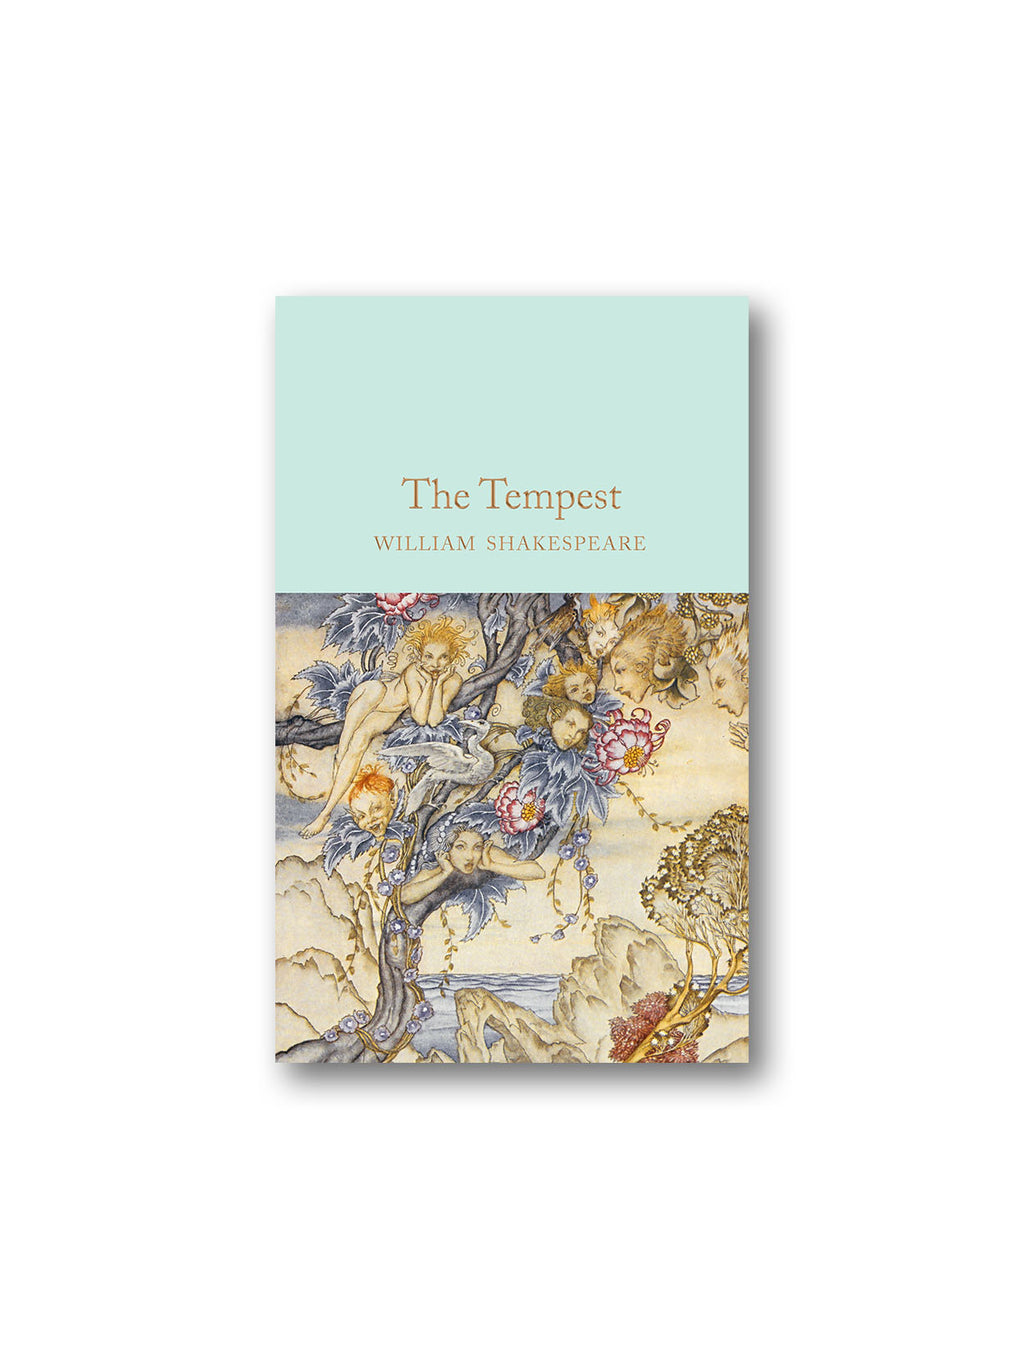 The Tempest - Macmillan Collector's Library